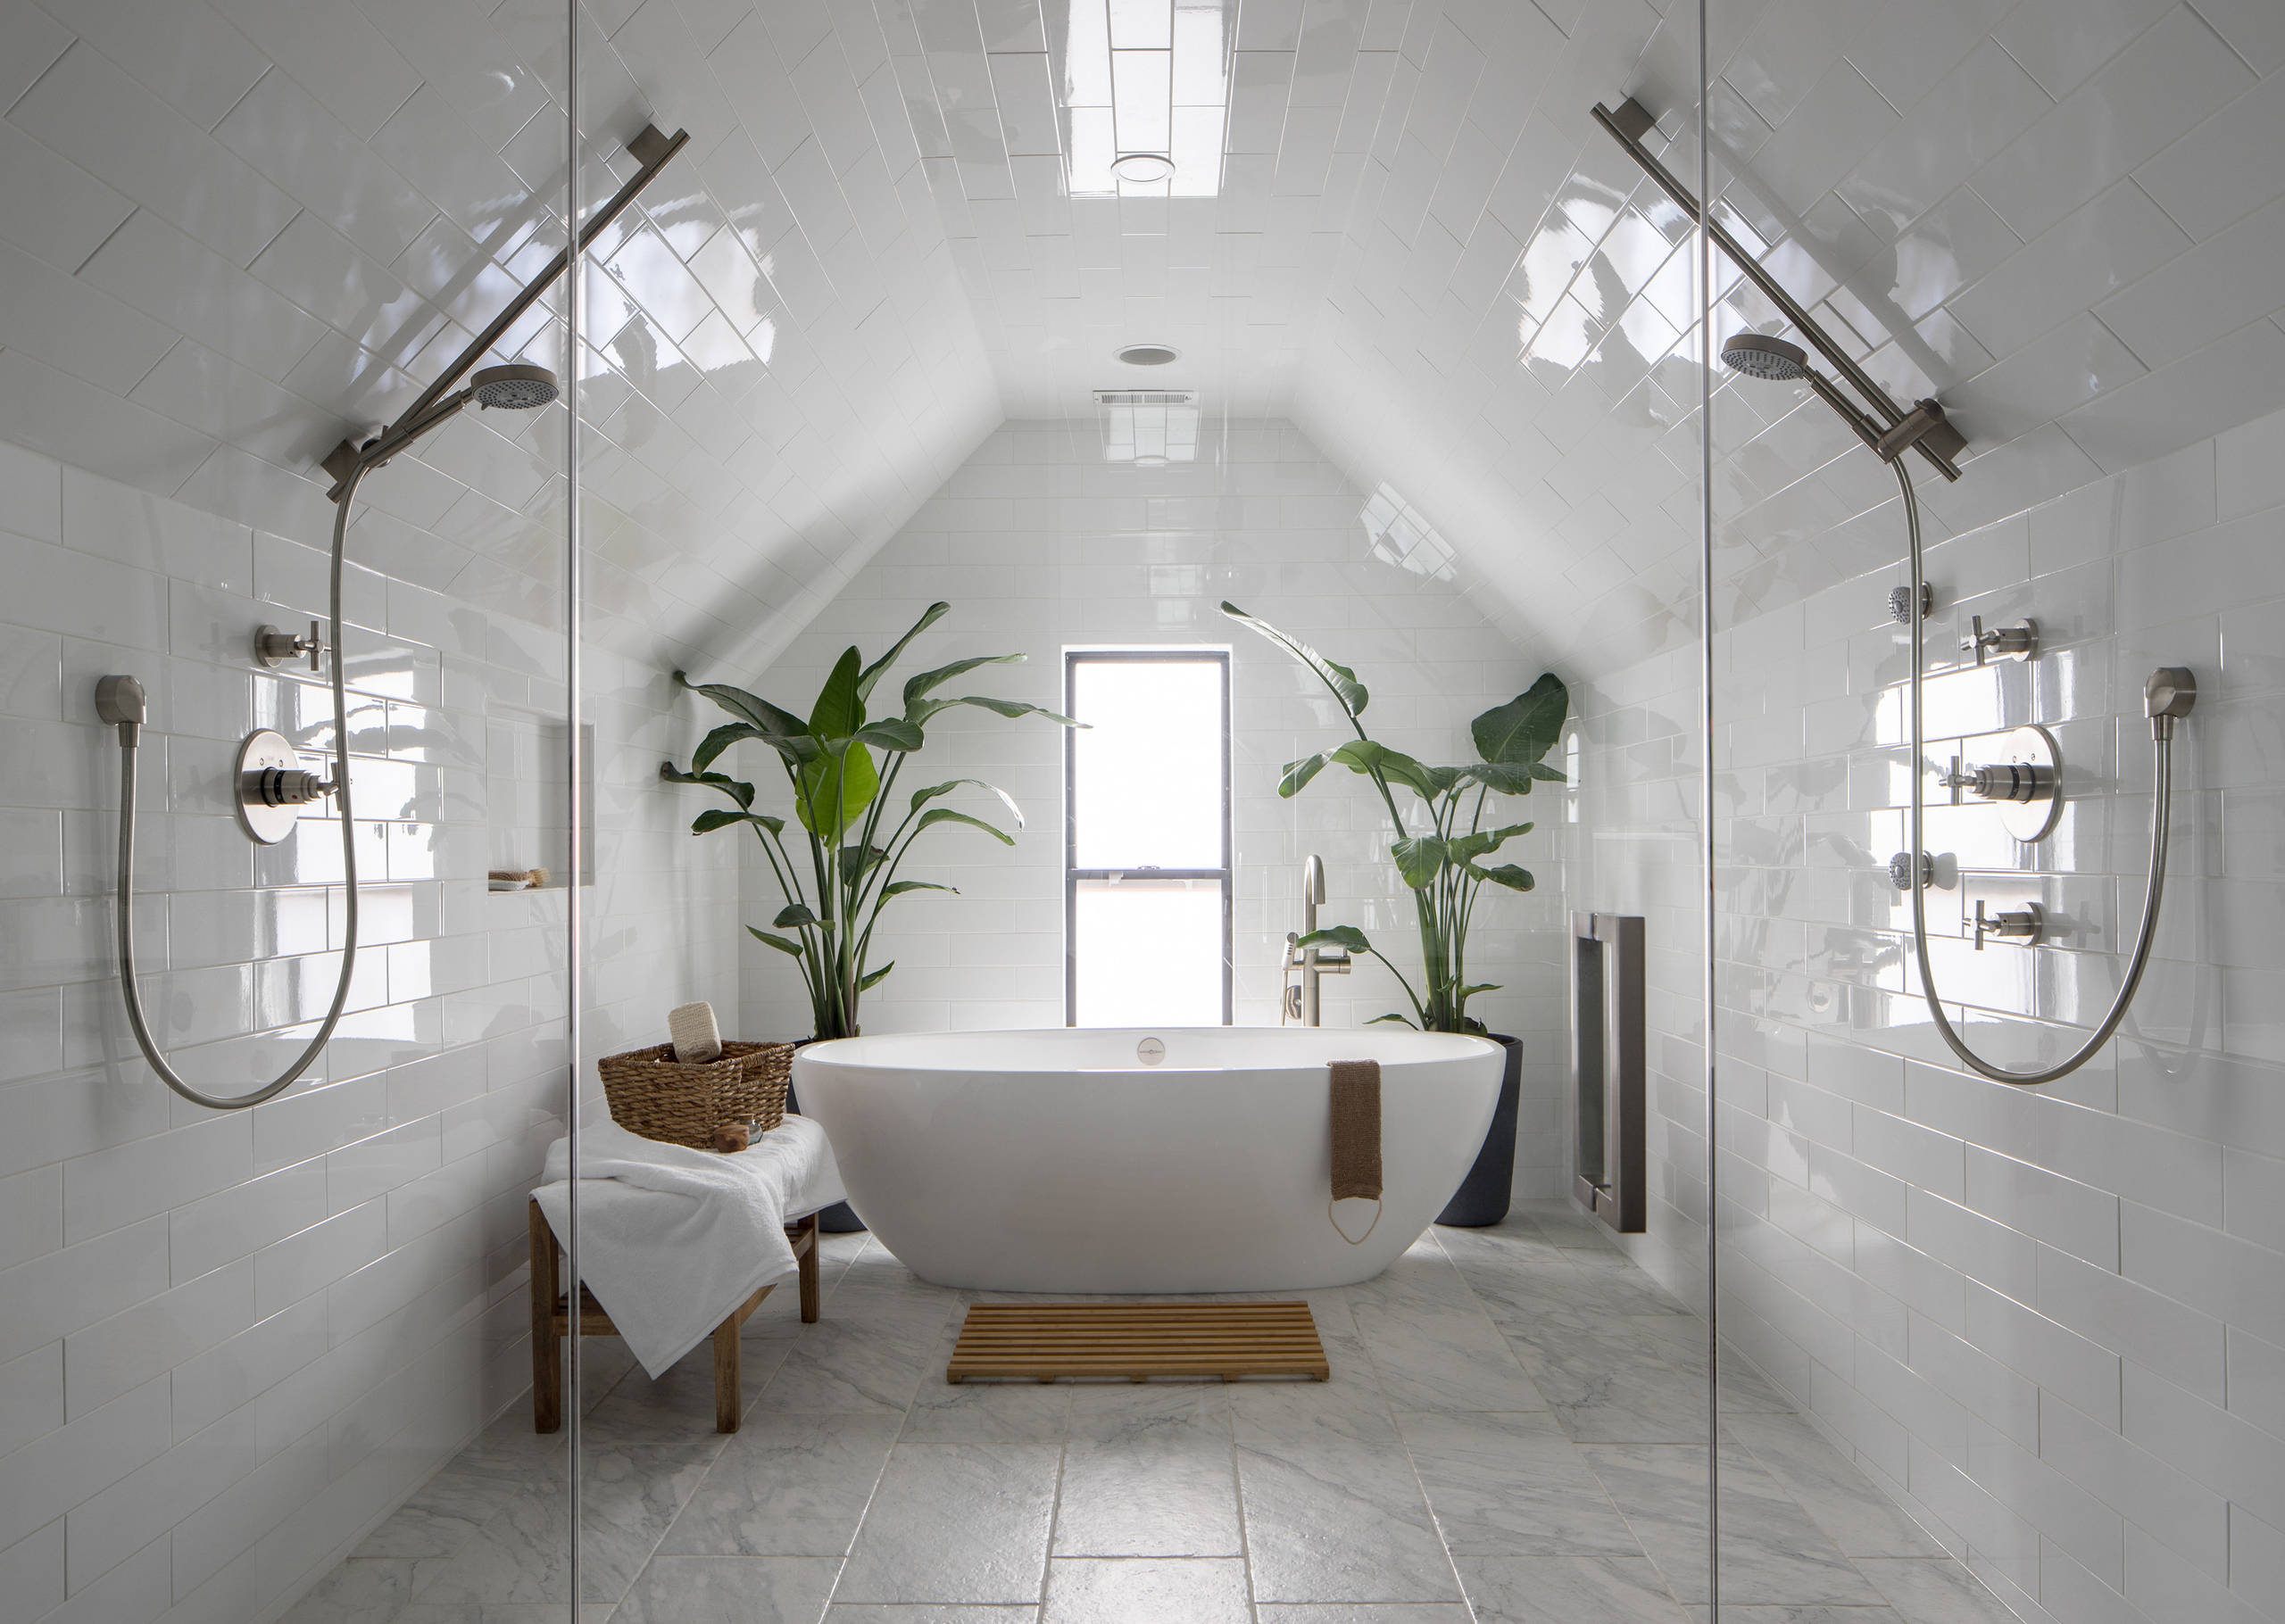 75 Beautiful Wet Room Pictures Ideas January 2021 Houzz